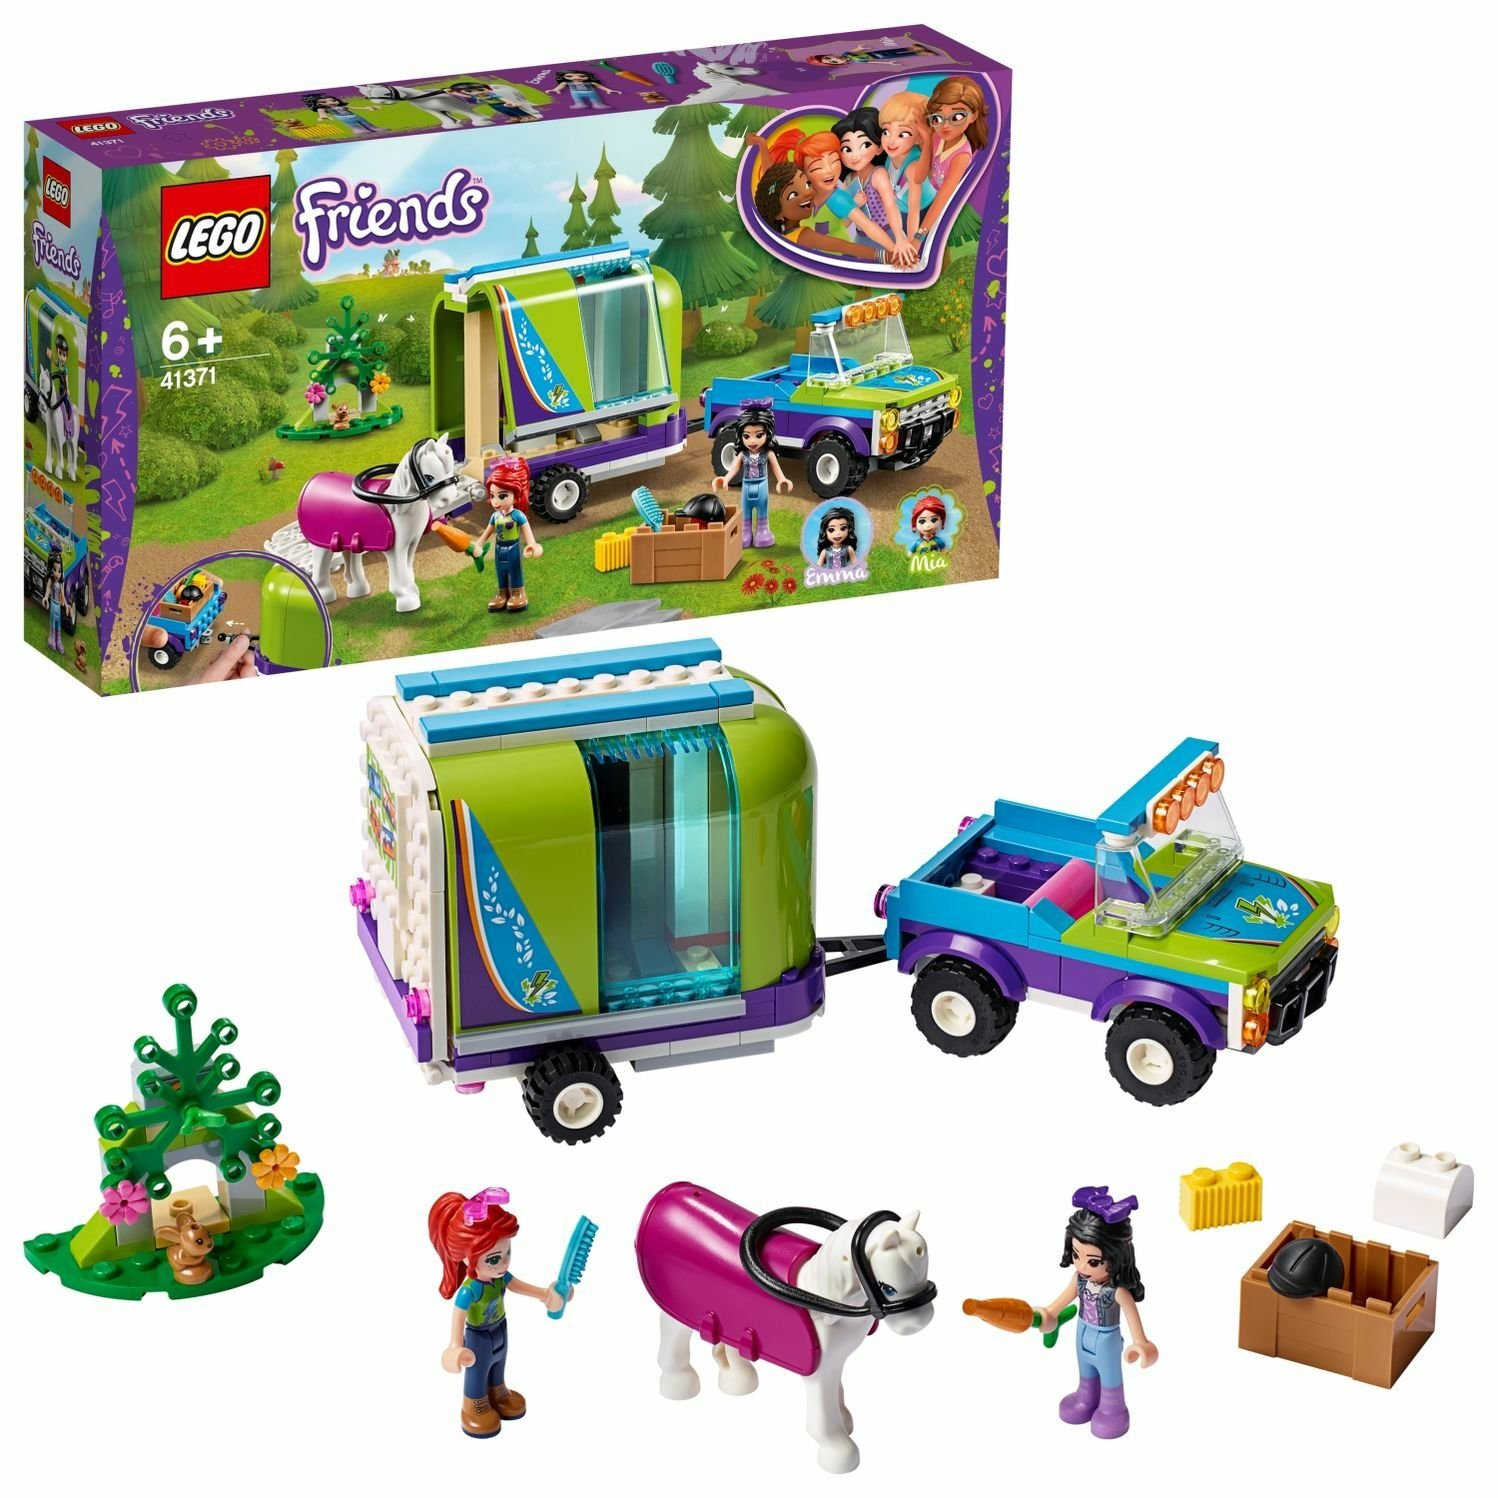 LEGO Friends Misas Horse Trailer Playset - 41371